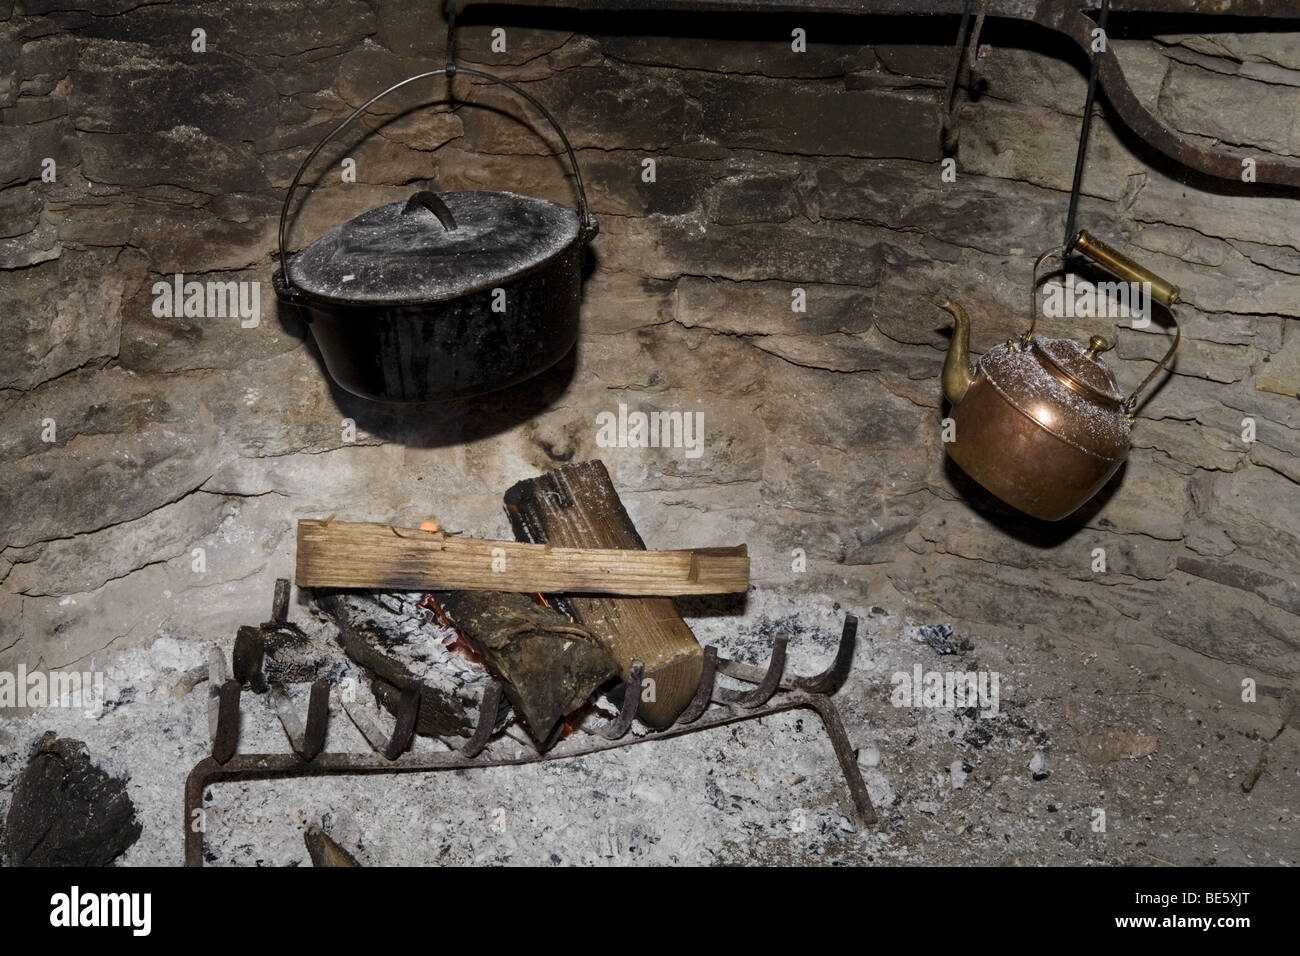 Fireplace with cast iron pot and kettle Stock Photo, Royalty Free ...